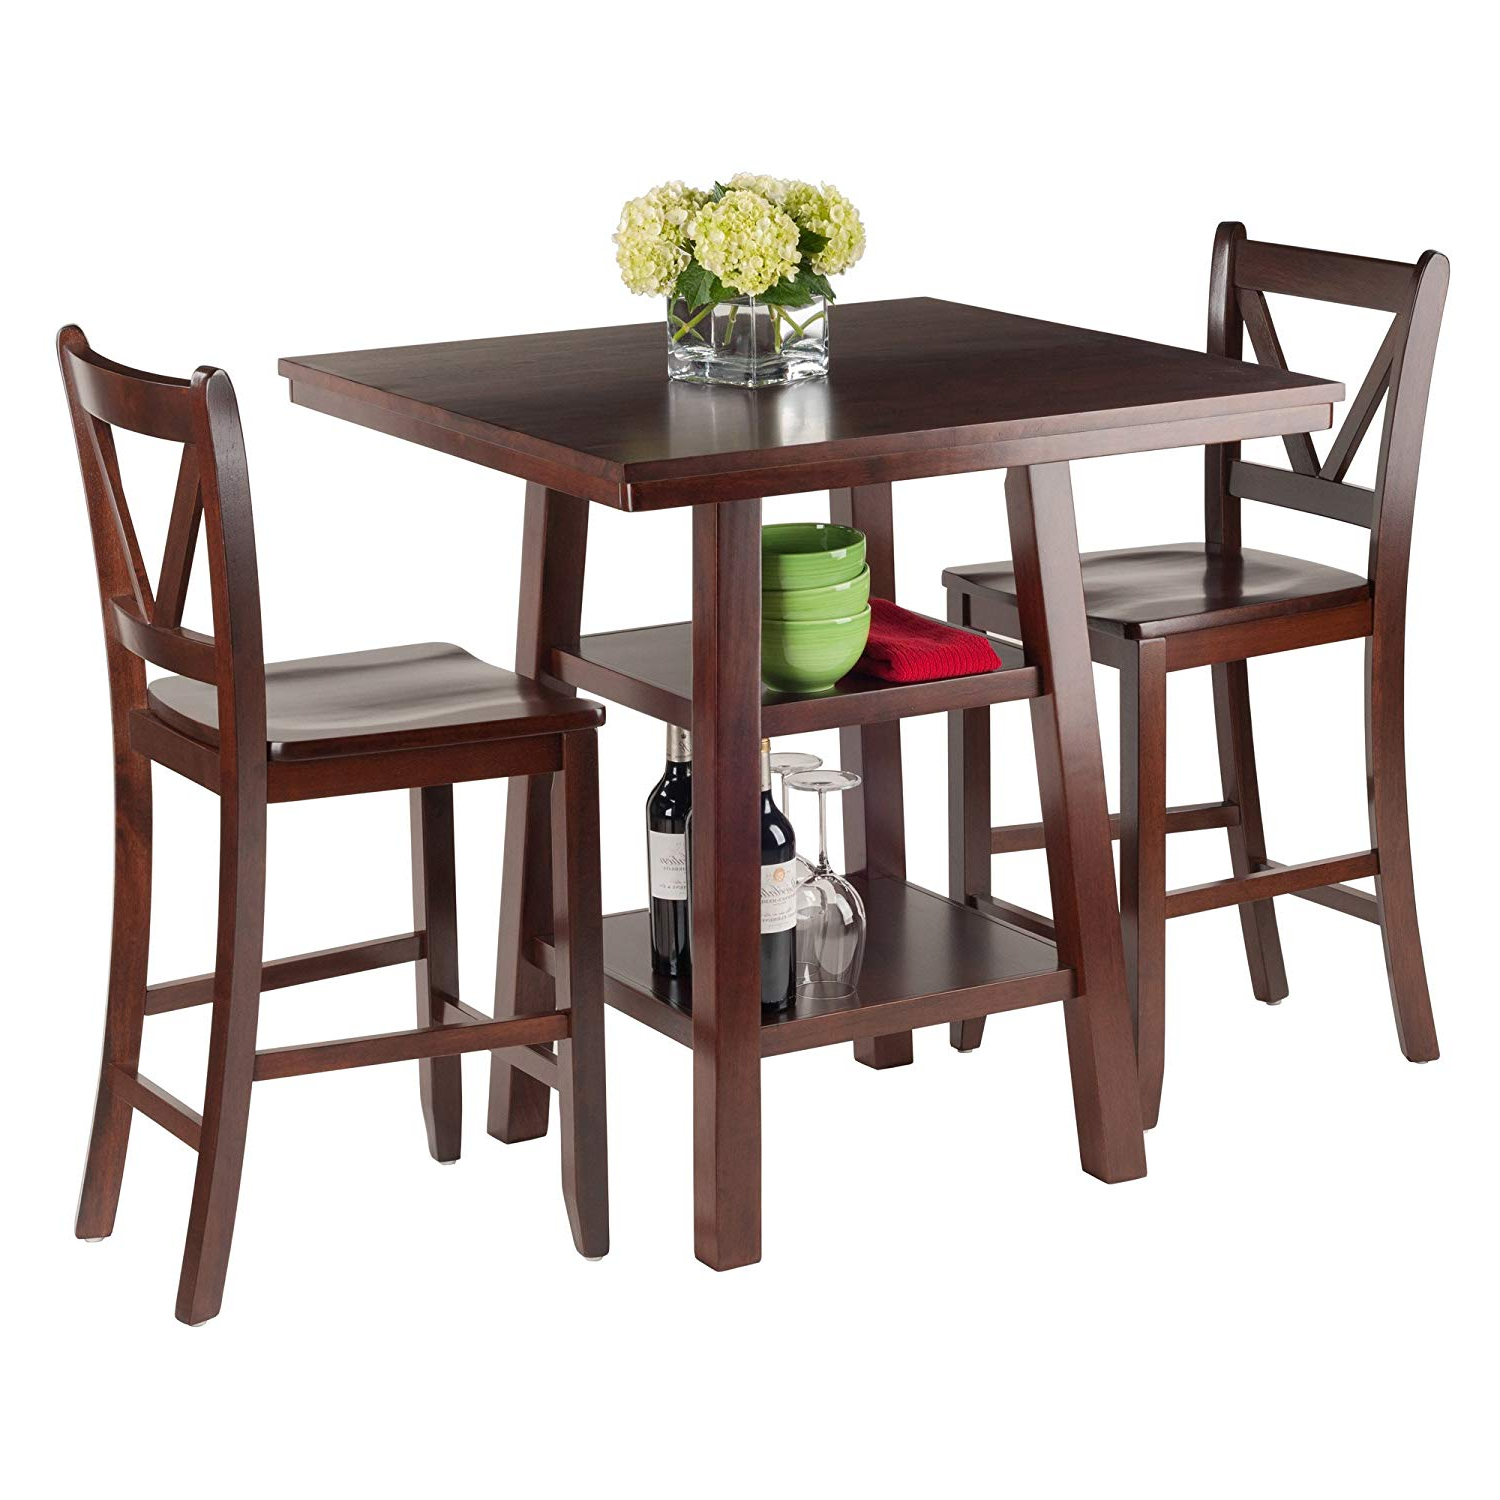 Best And Newest Winsome 3 Piece Counter Height Dining Sets Regarding Amazon: Winsome Wood Orlando 3 Piece Set High Table, 2 Shelves (View 3 of 25)